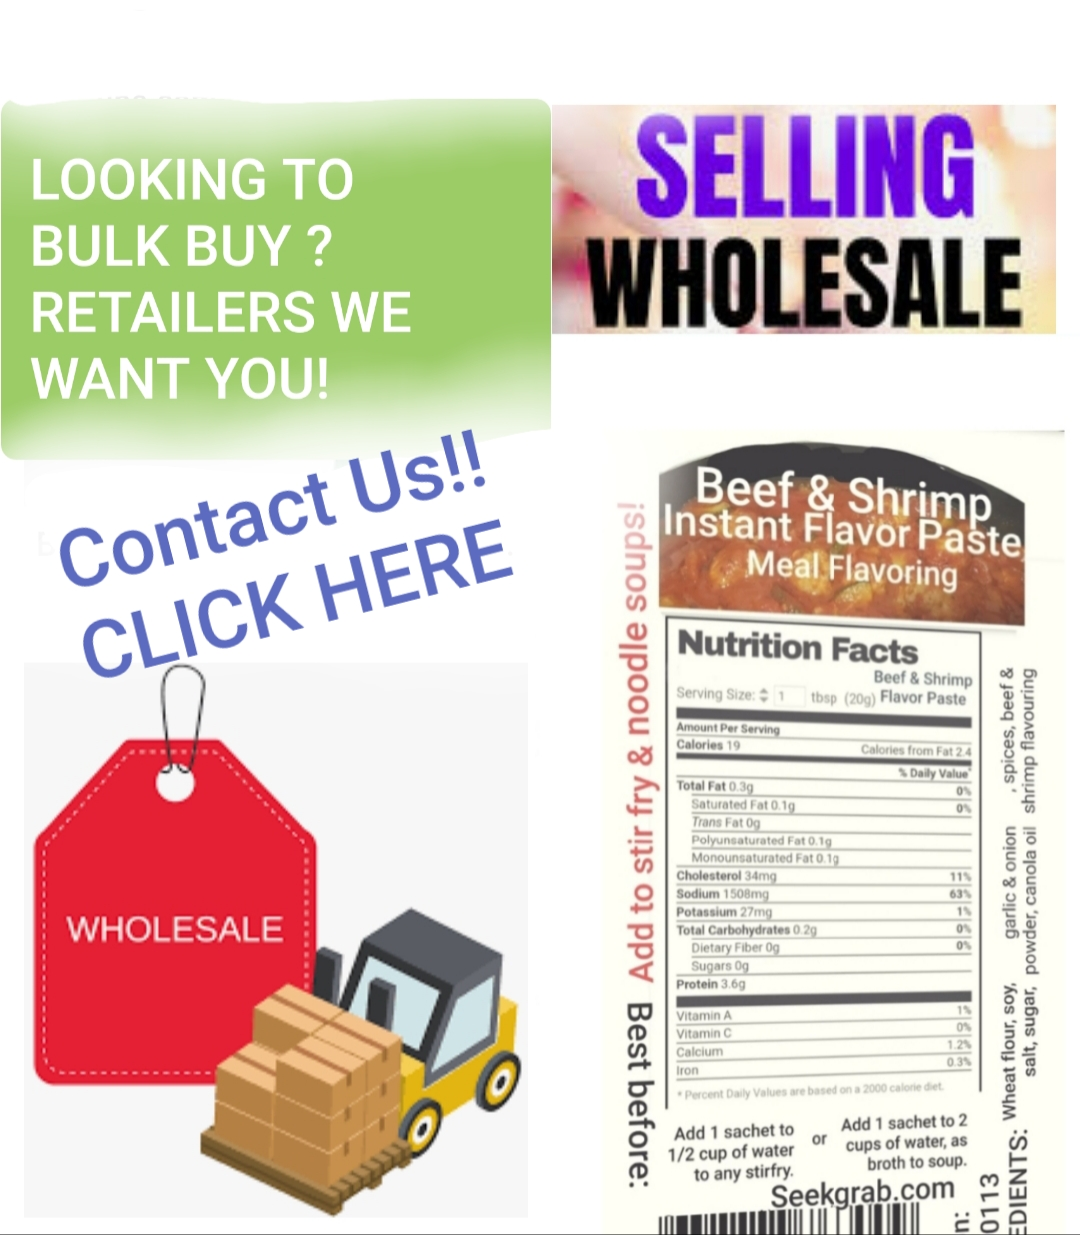 Wholesale Bulk Buying Interest for Retailers